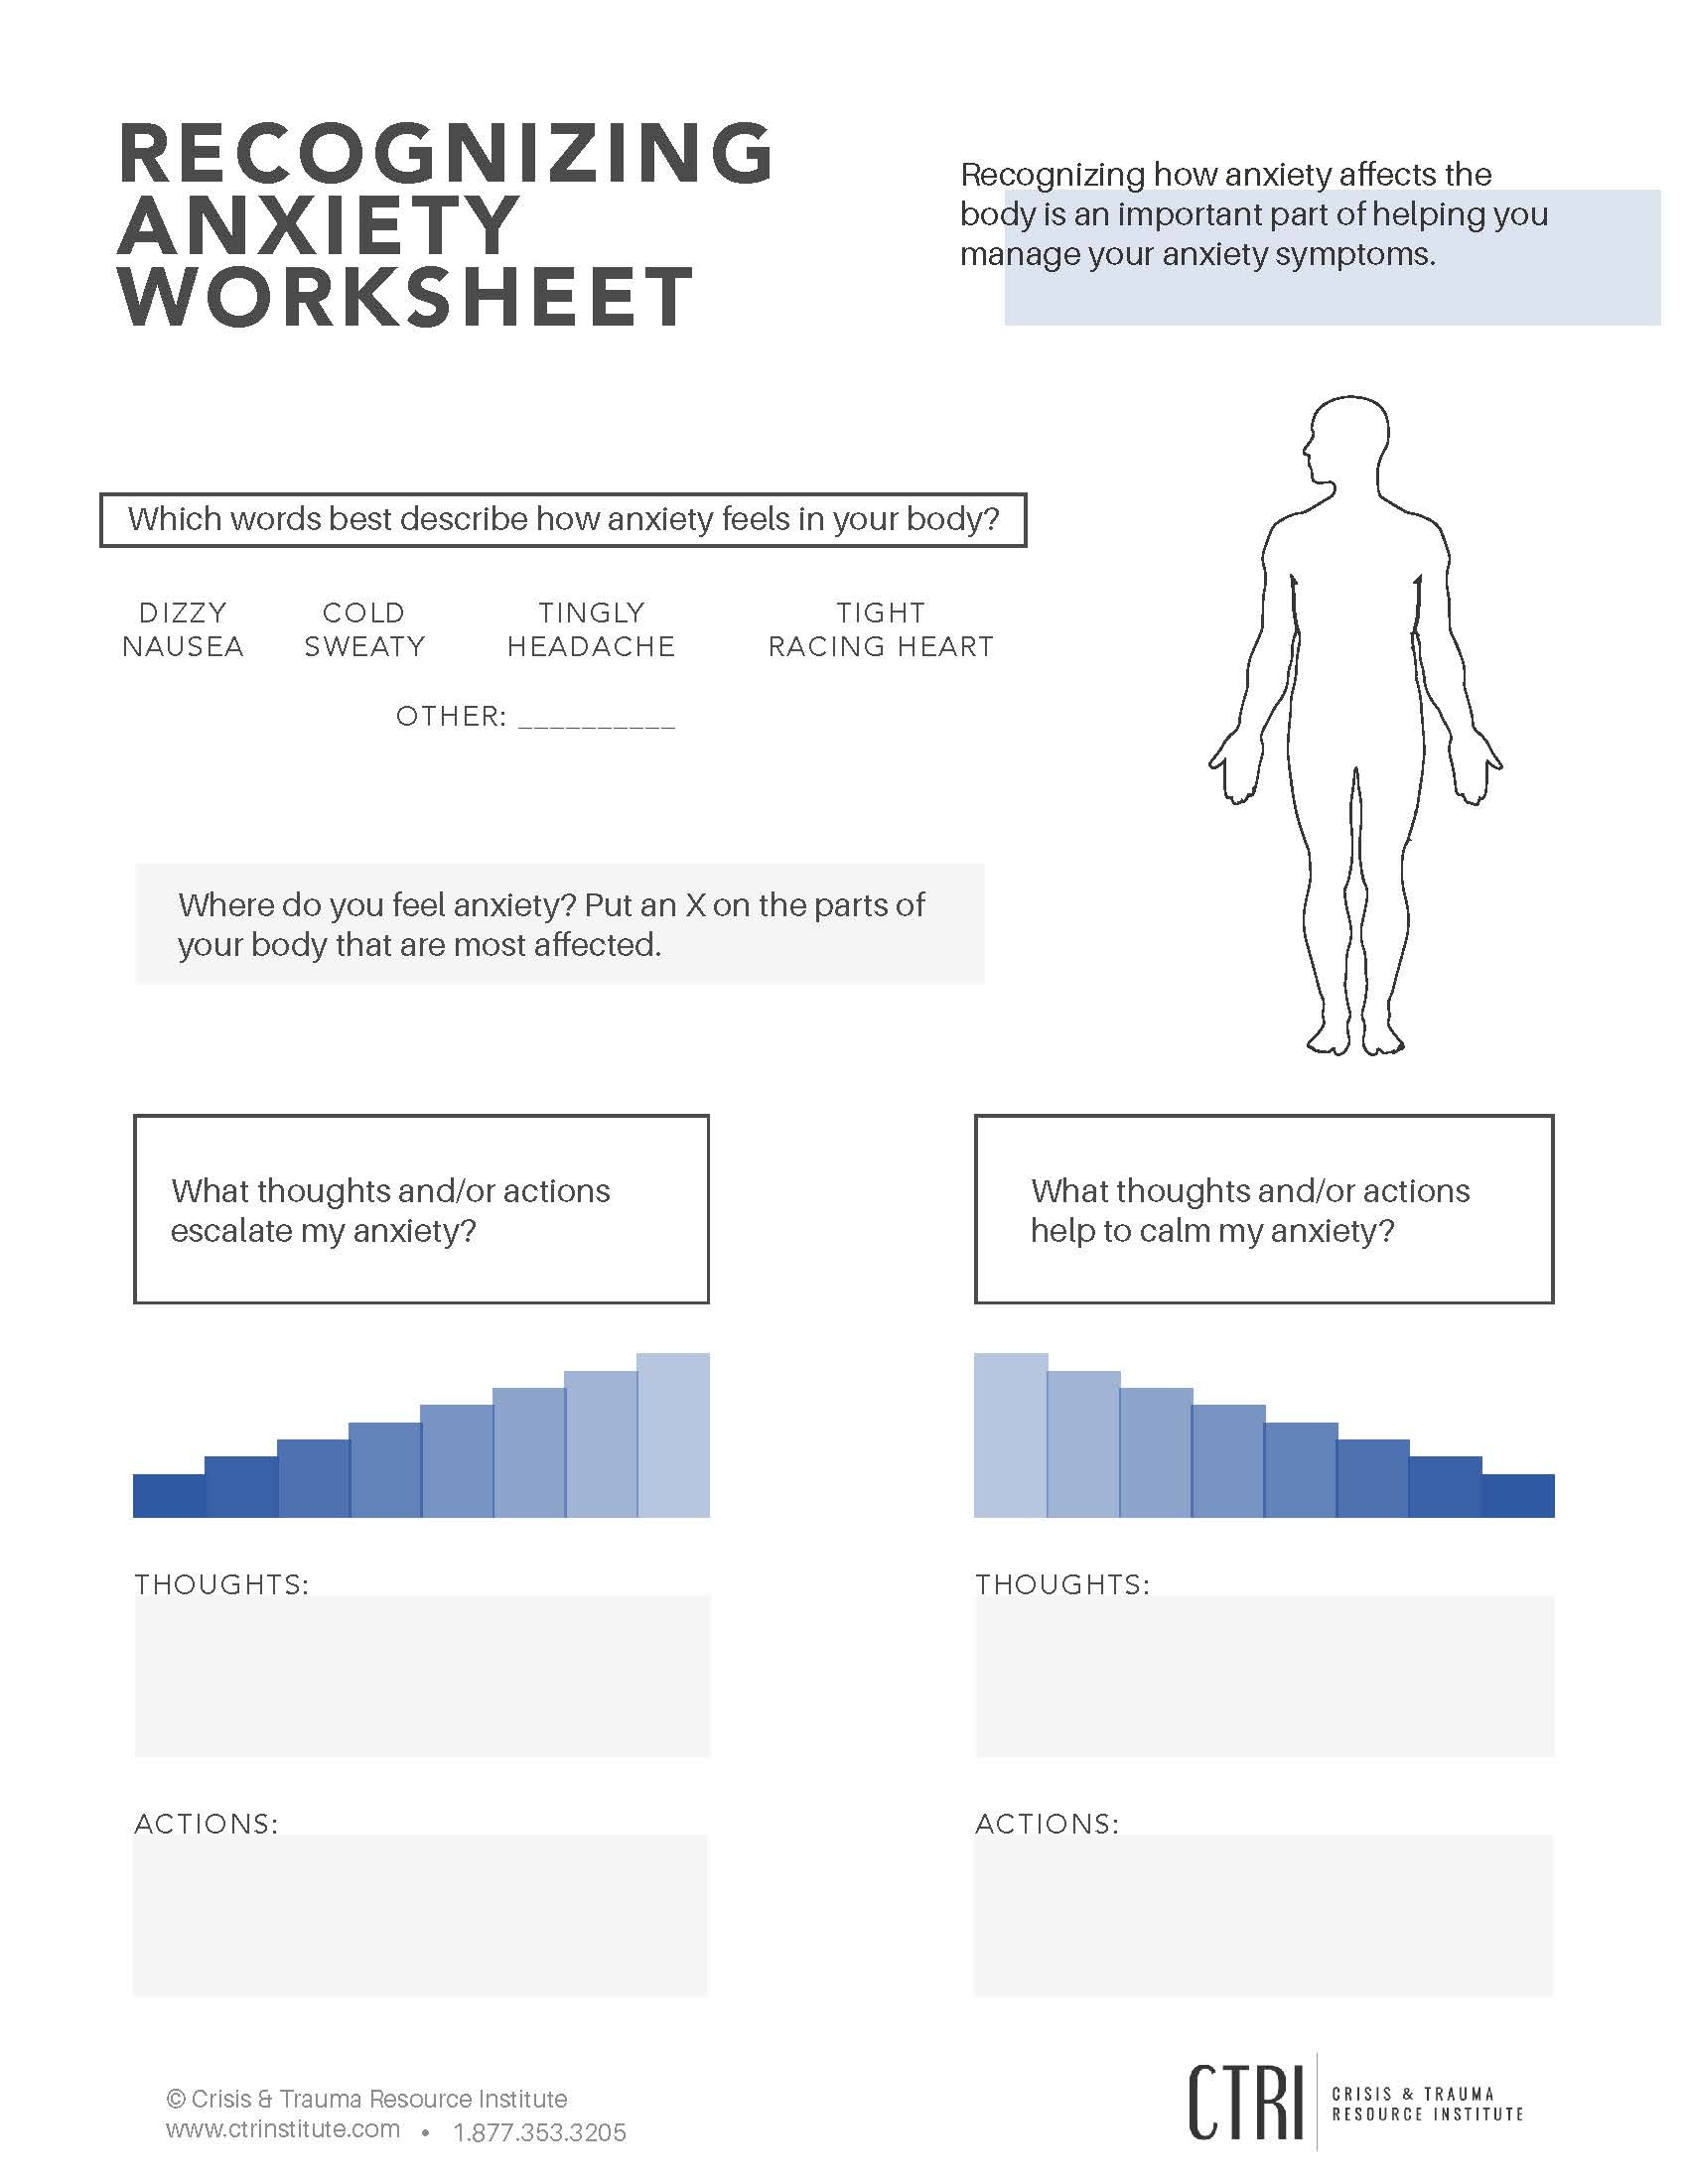 Recognizing Anxiety Worksheet